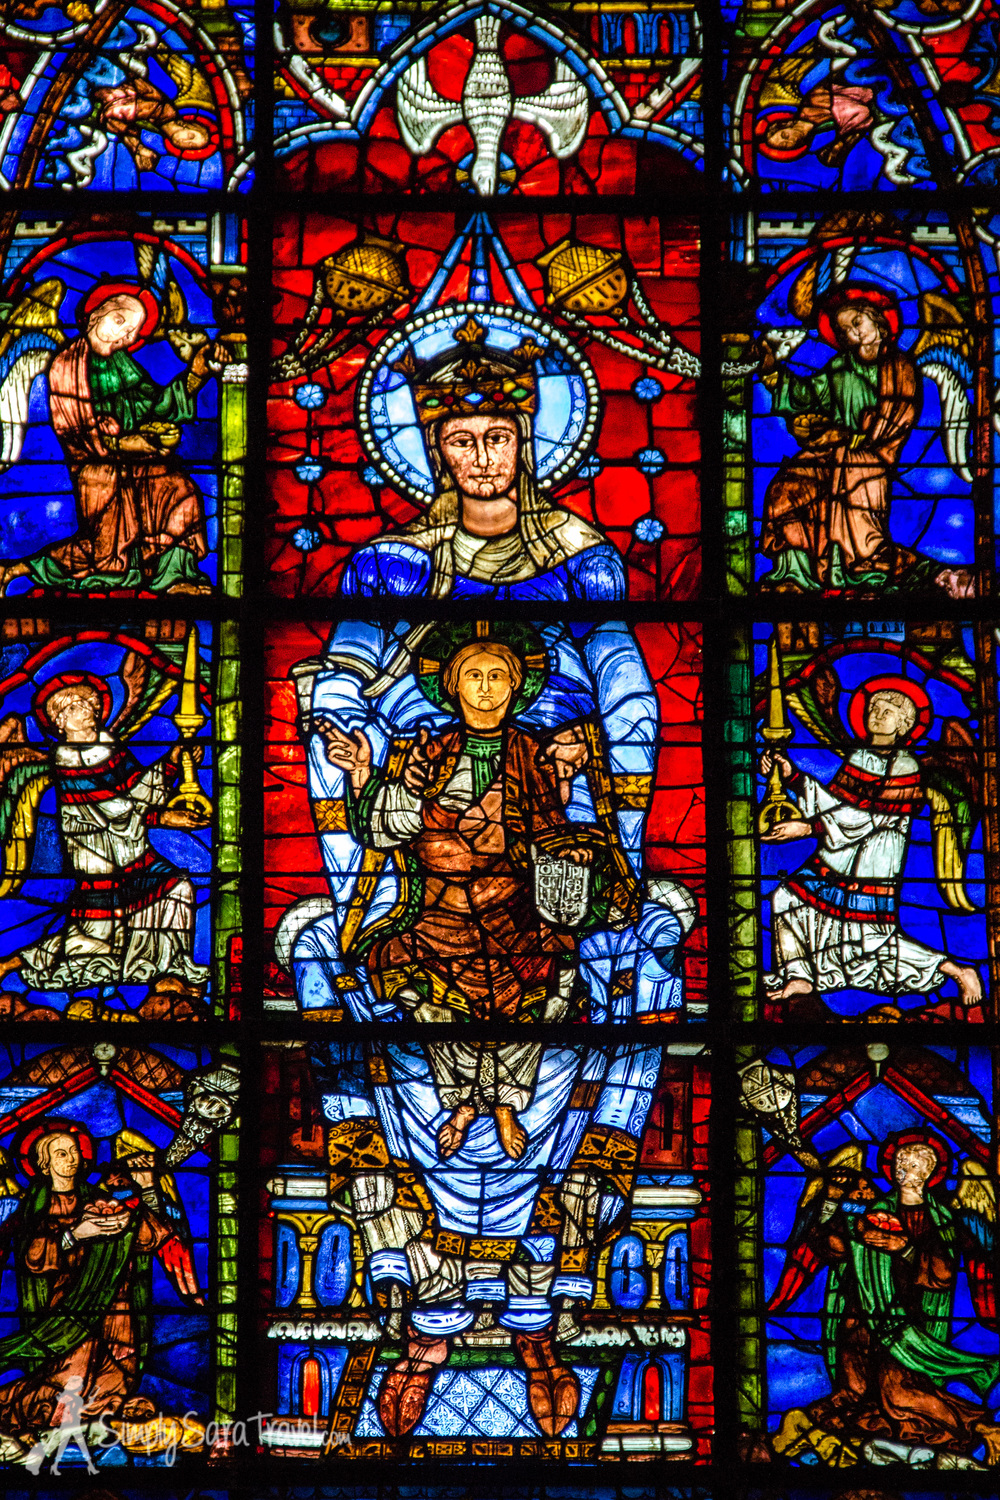 The Blue Virgin Window (Notre Dame de la Belle Verrière) is famous. It is another of the oldest windows in the Chartres Cathedral - it also dates back from the mid-12th century. It was the central window behind the alter of the church, and survived the fire. It was salvaged and reinserted into a new frame in the 13th century when the new (present) Cathedral was built.